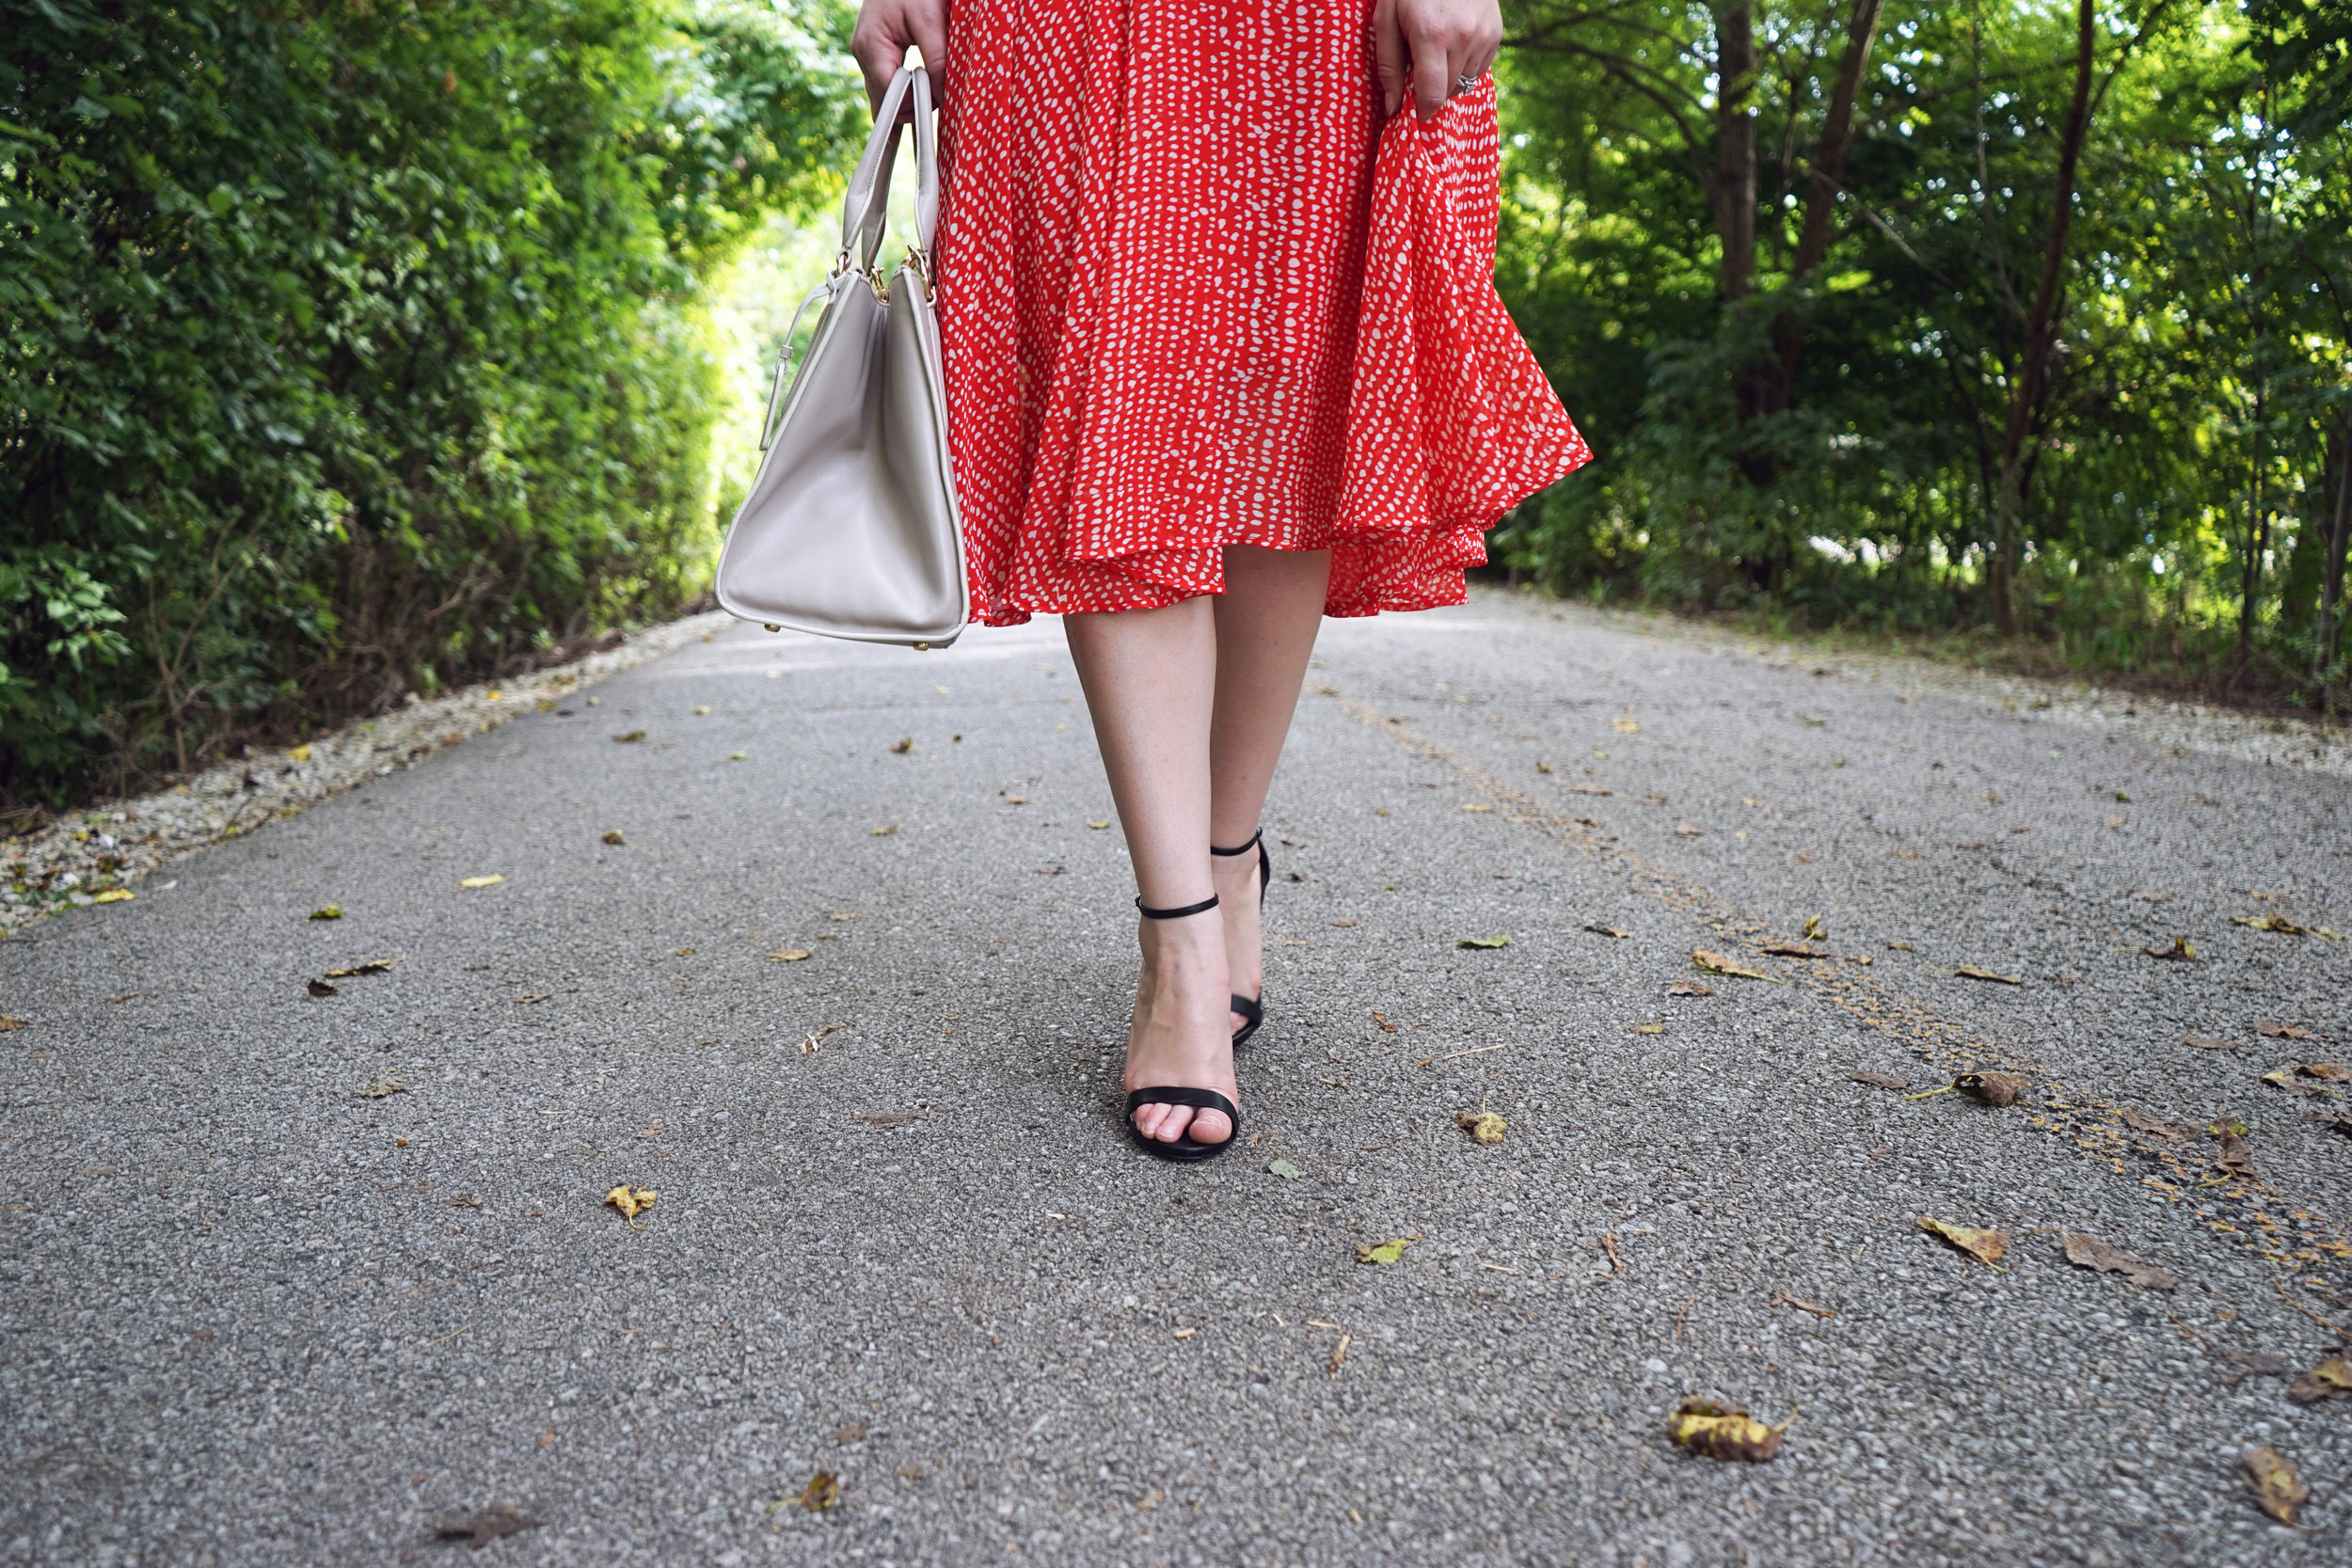 Leith Midi Swing Dress red barberry dot, Club Monaco Thanda cashmere sweater, Steve Madden Stecy sandals, Coach purse, Etsy necklace - Maggie a la Mode